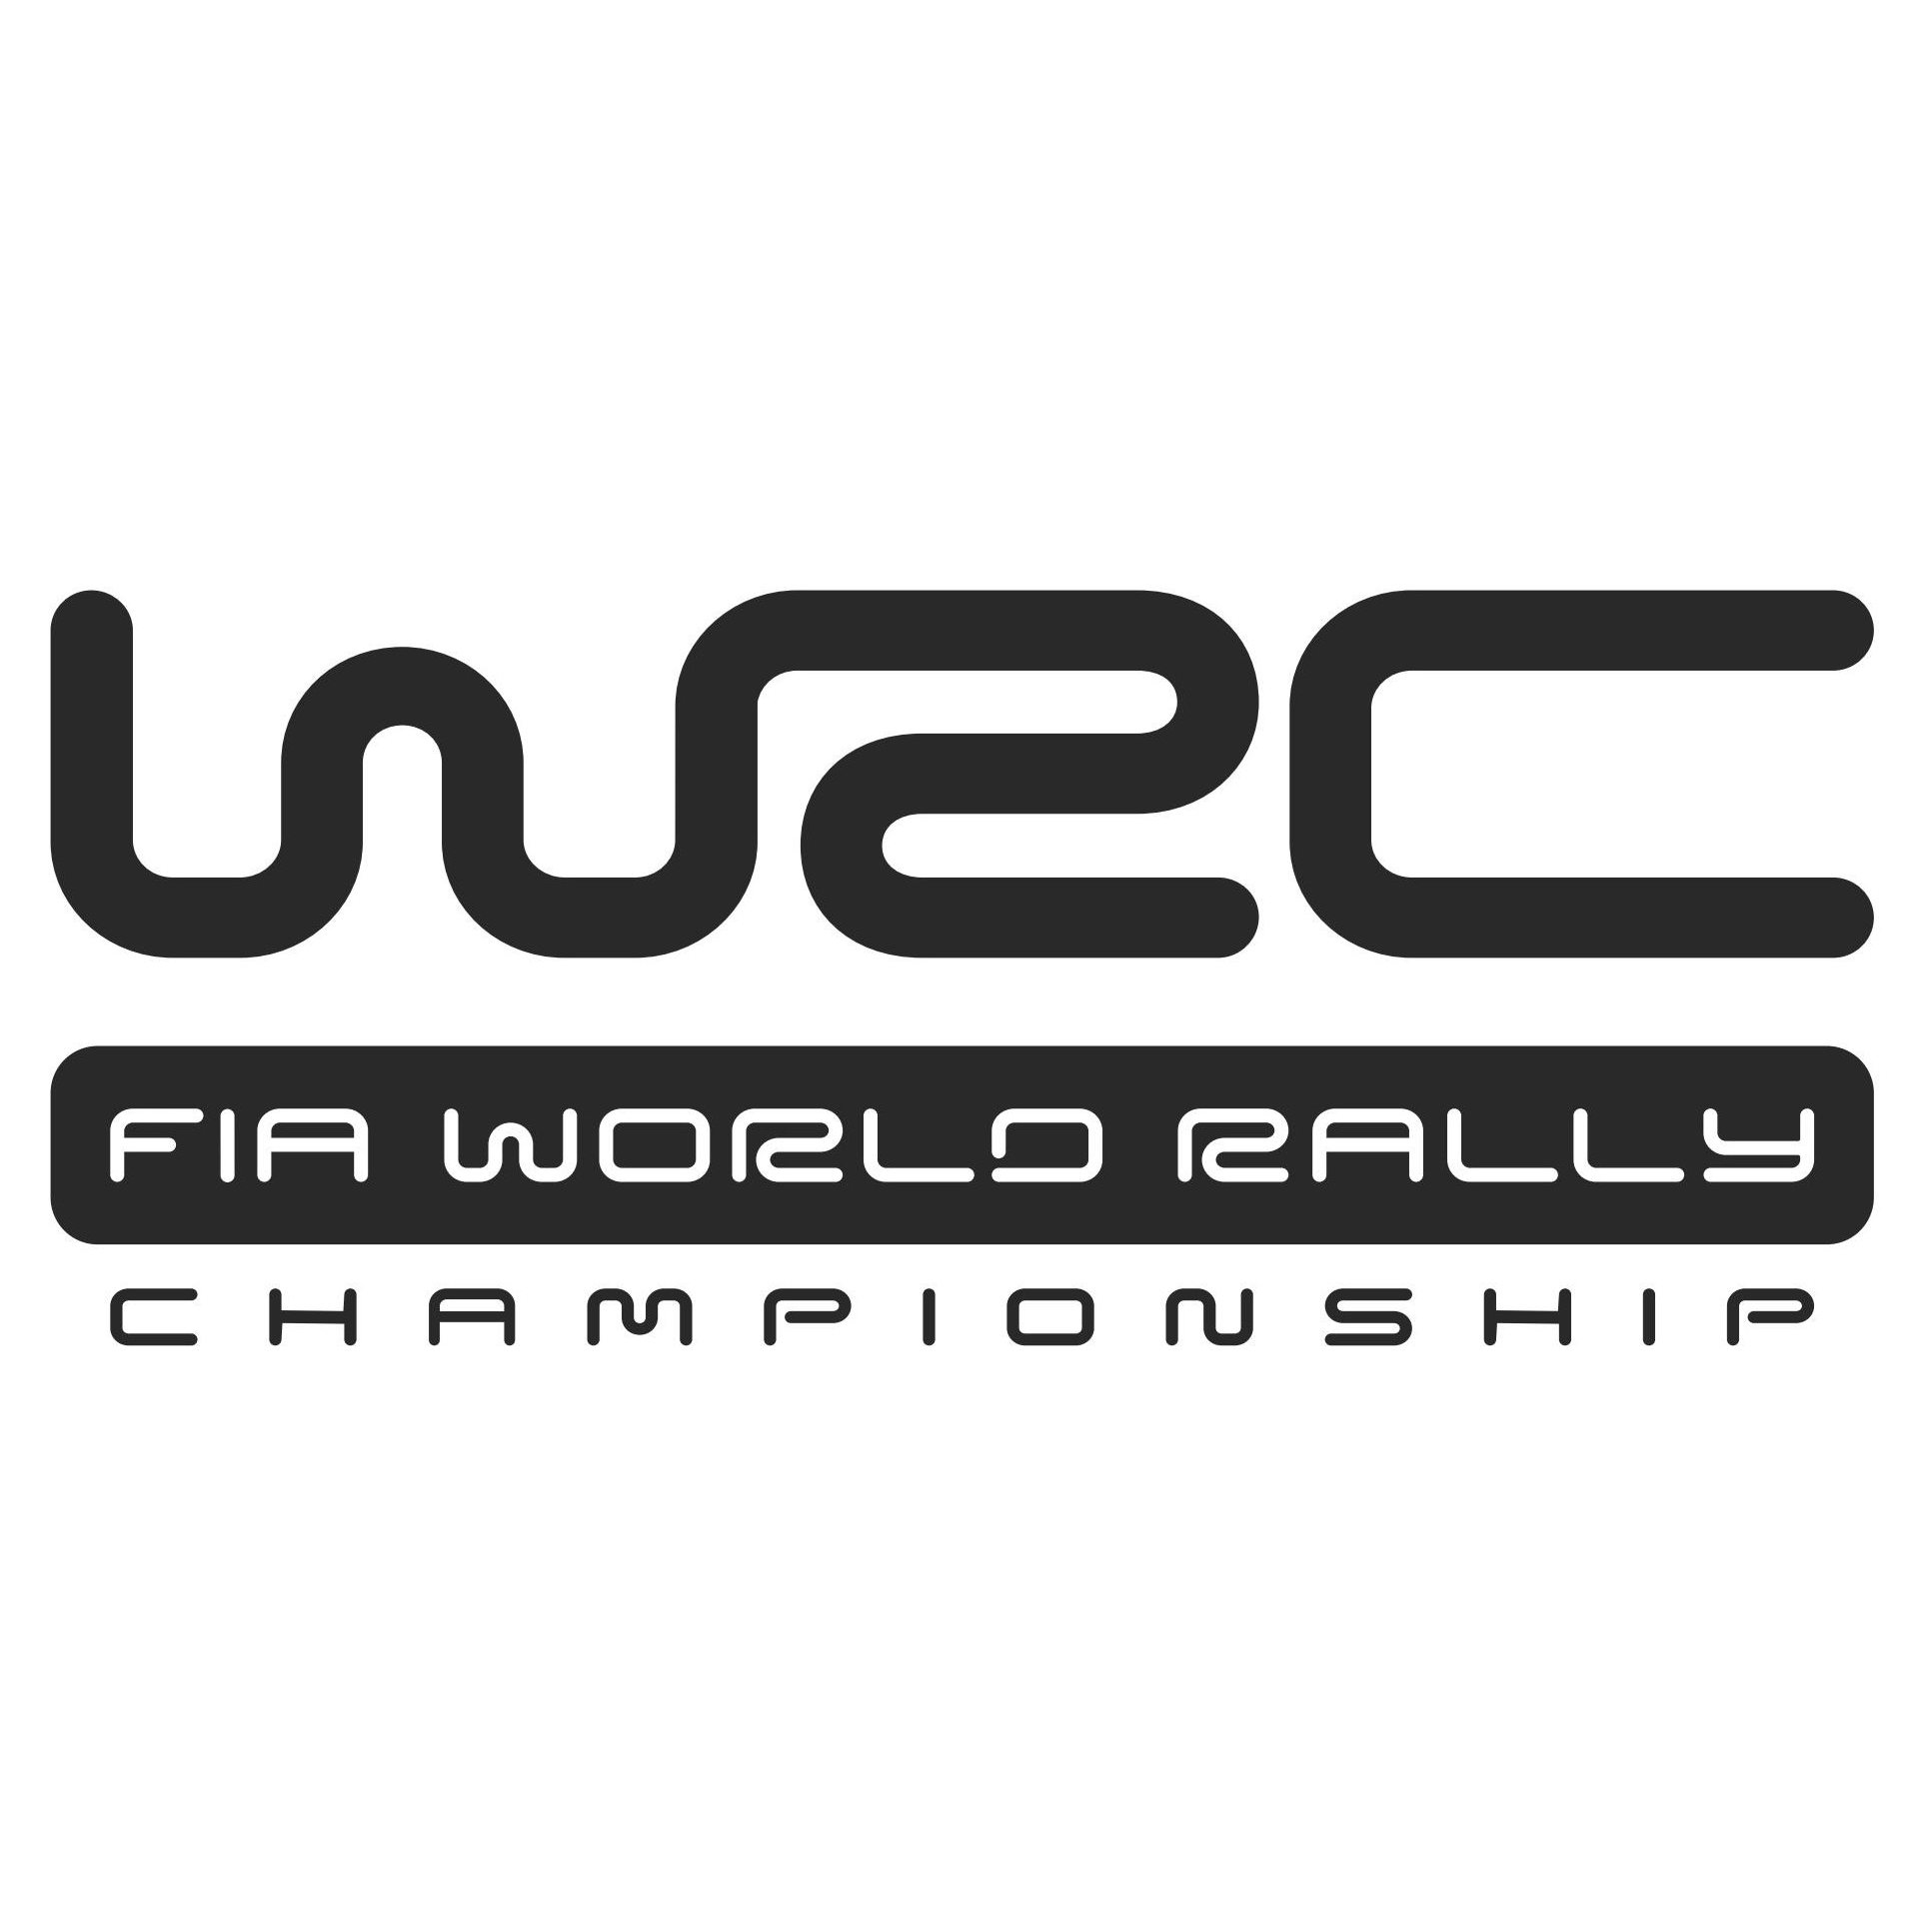 2013 World Rally Championship